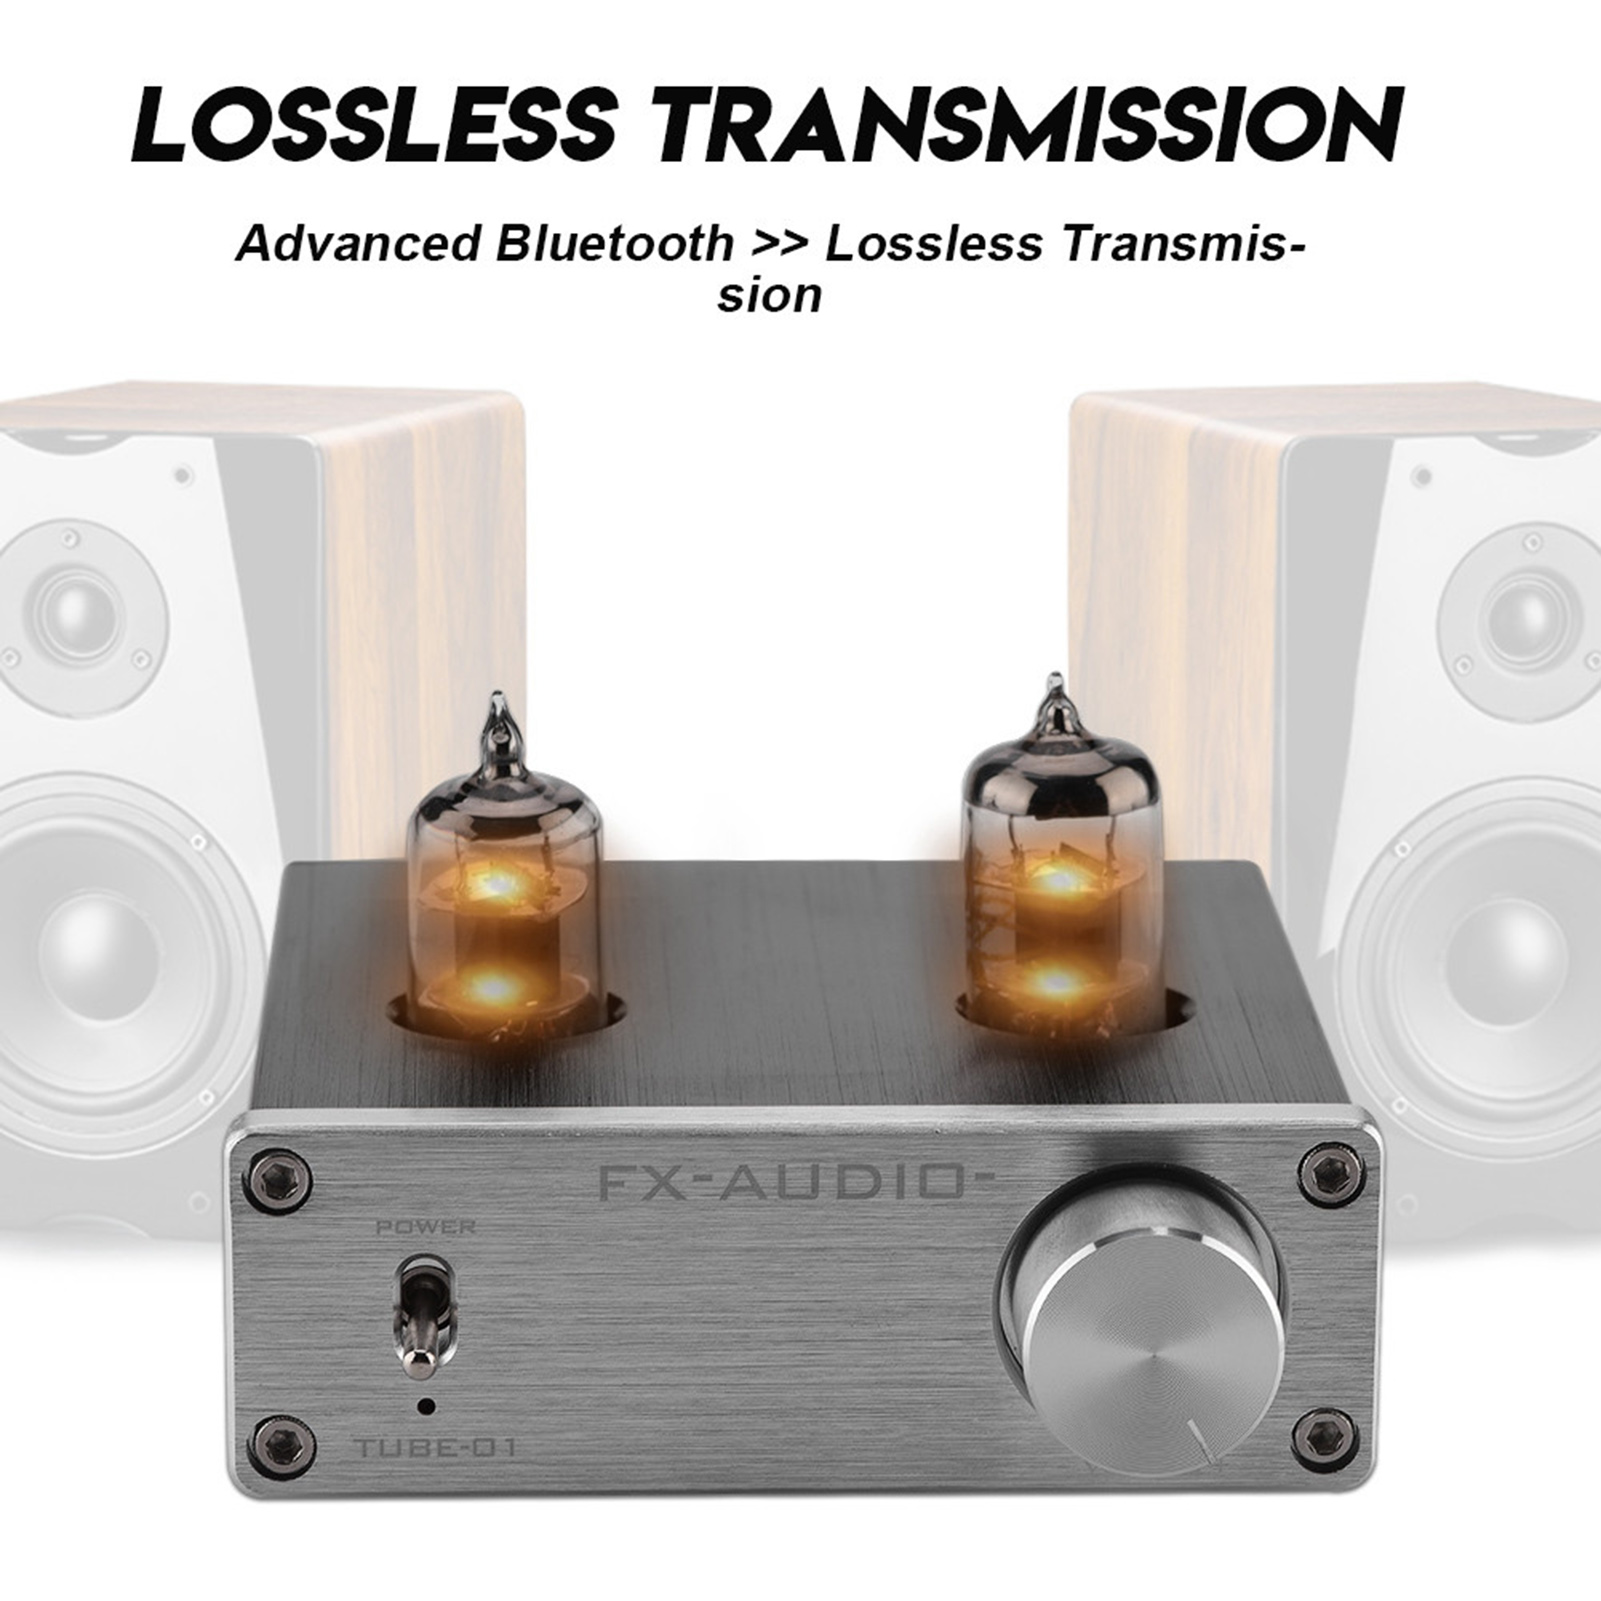 Hifi Stereo Tube Amplifier Preamplifier 100db Signal To Noise Ratio